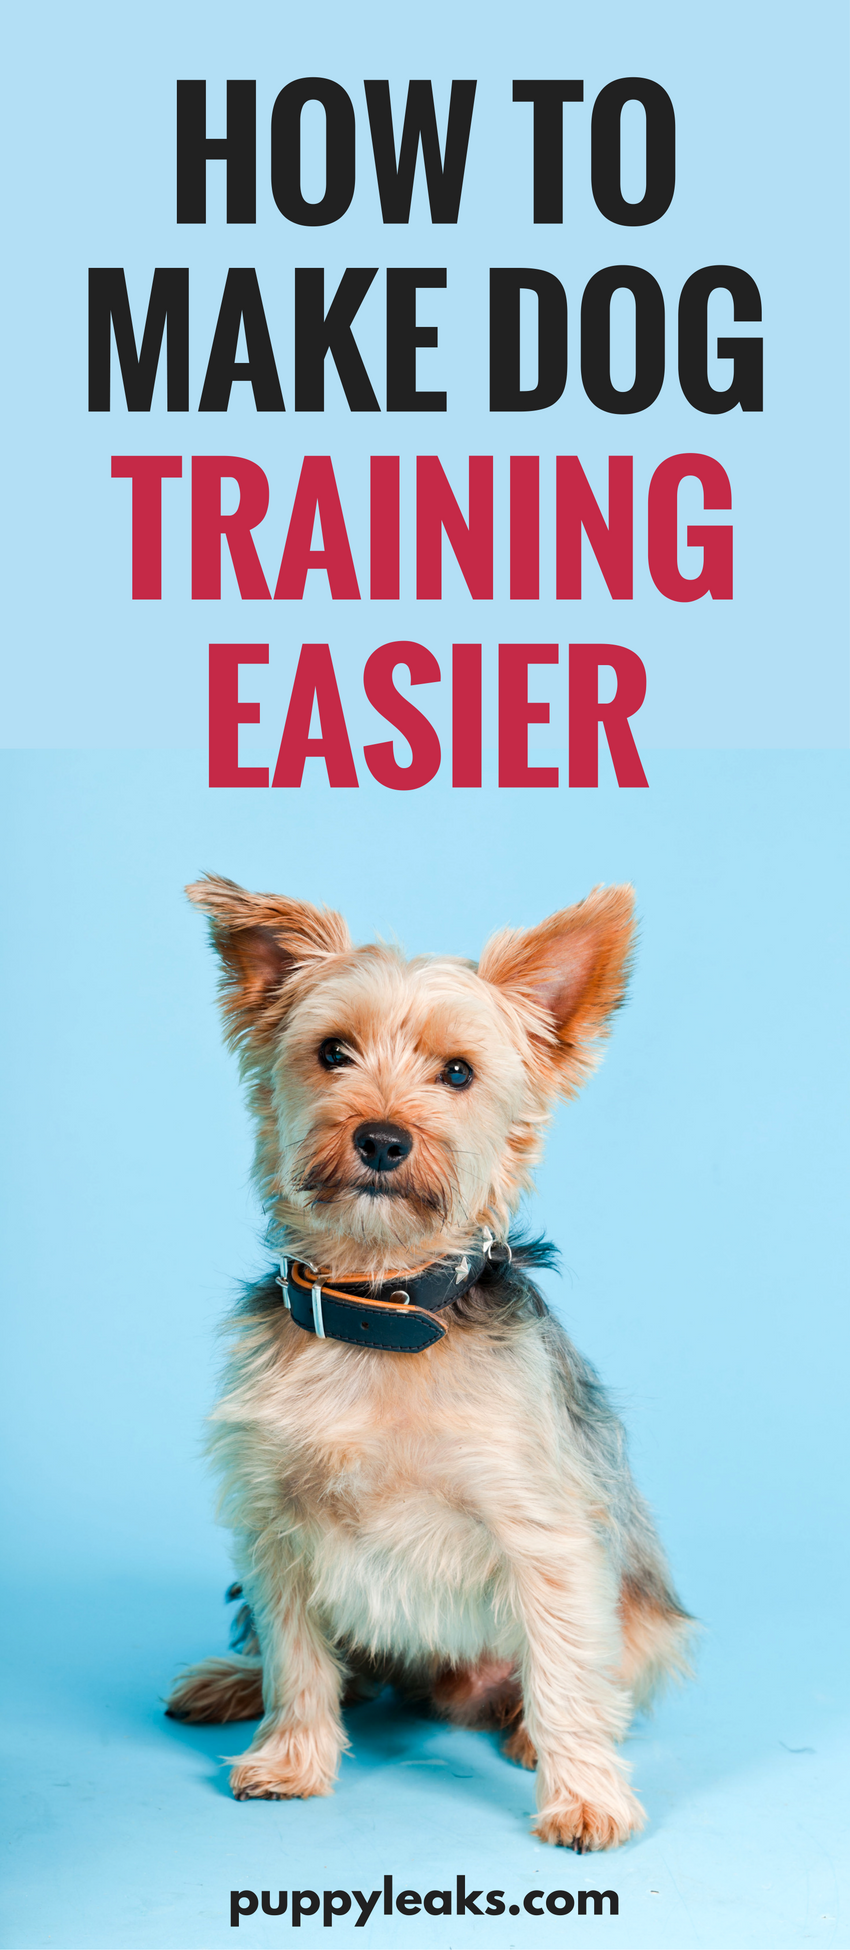 10 Tips to Make Dog Training Easier